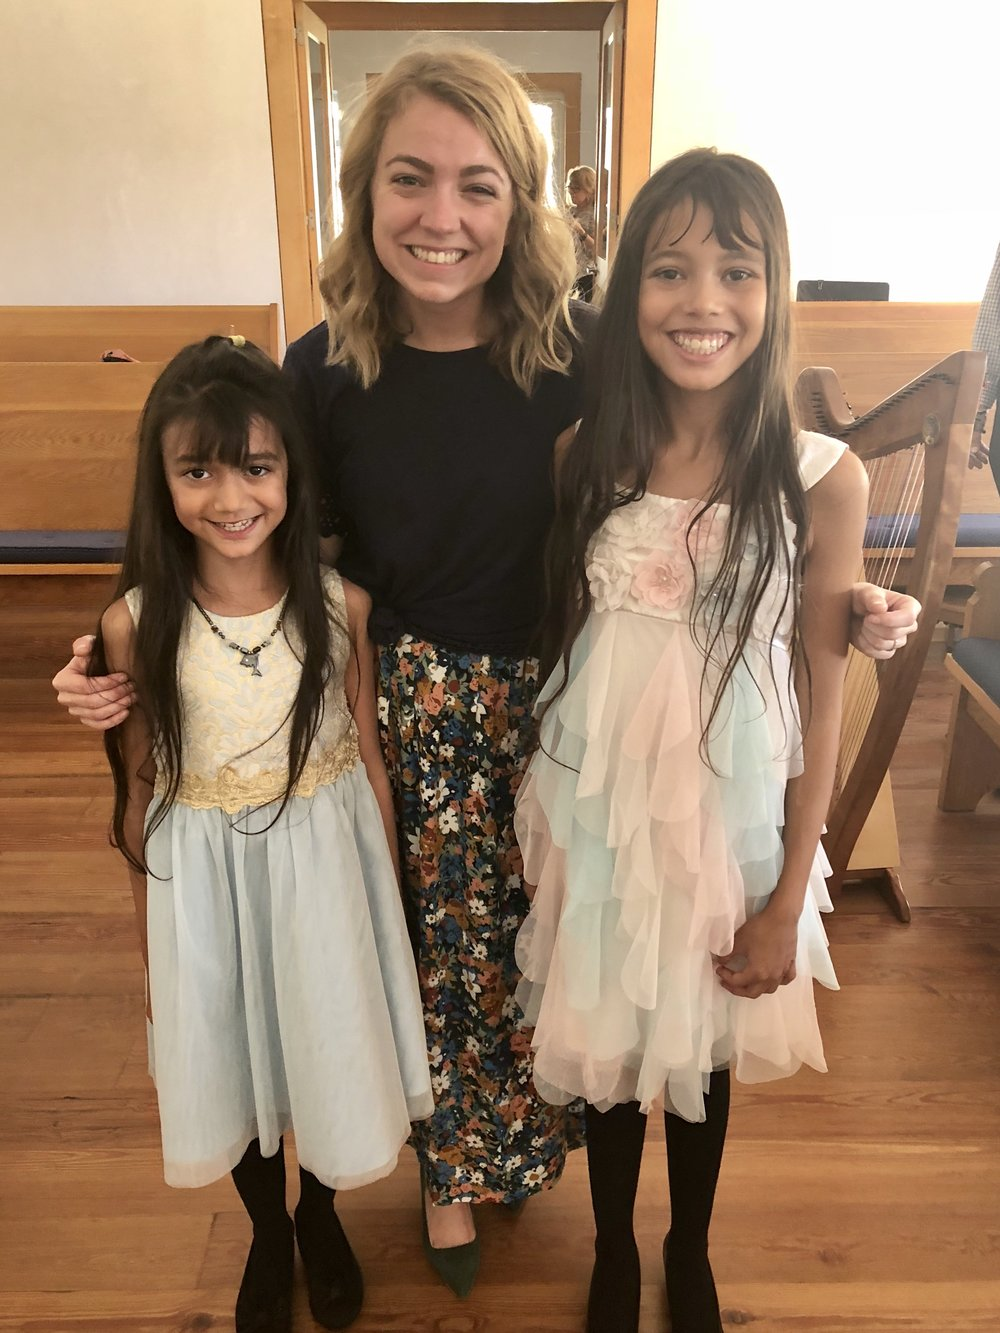 Proud sisters after their beautiful winter 2018 harp performances